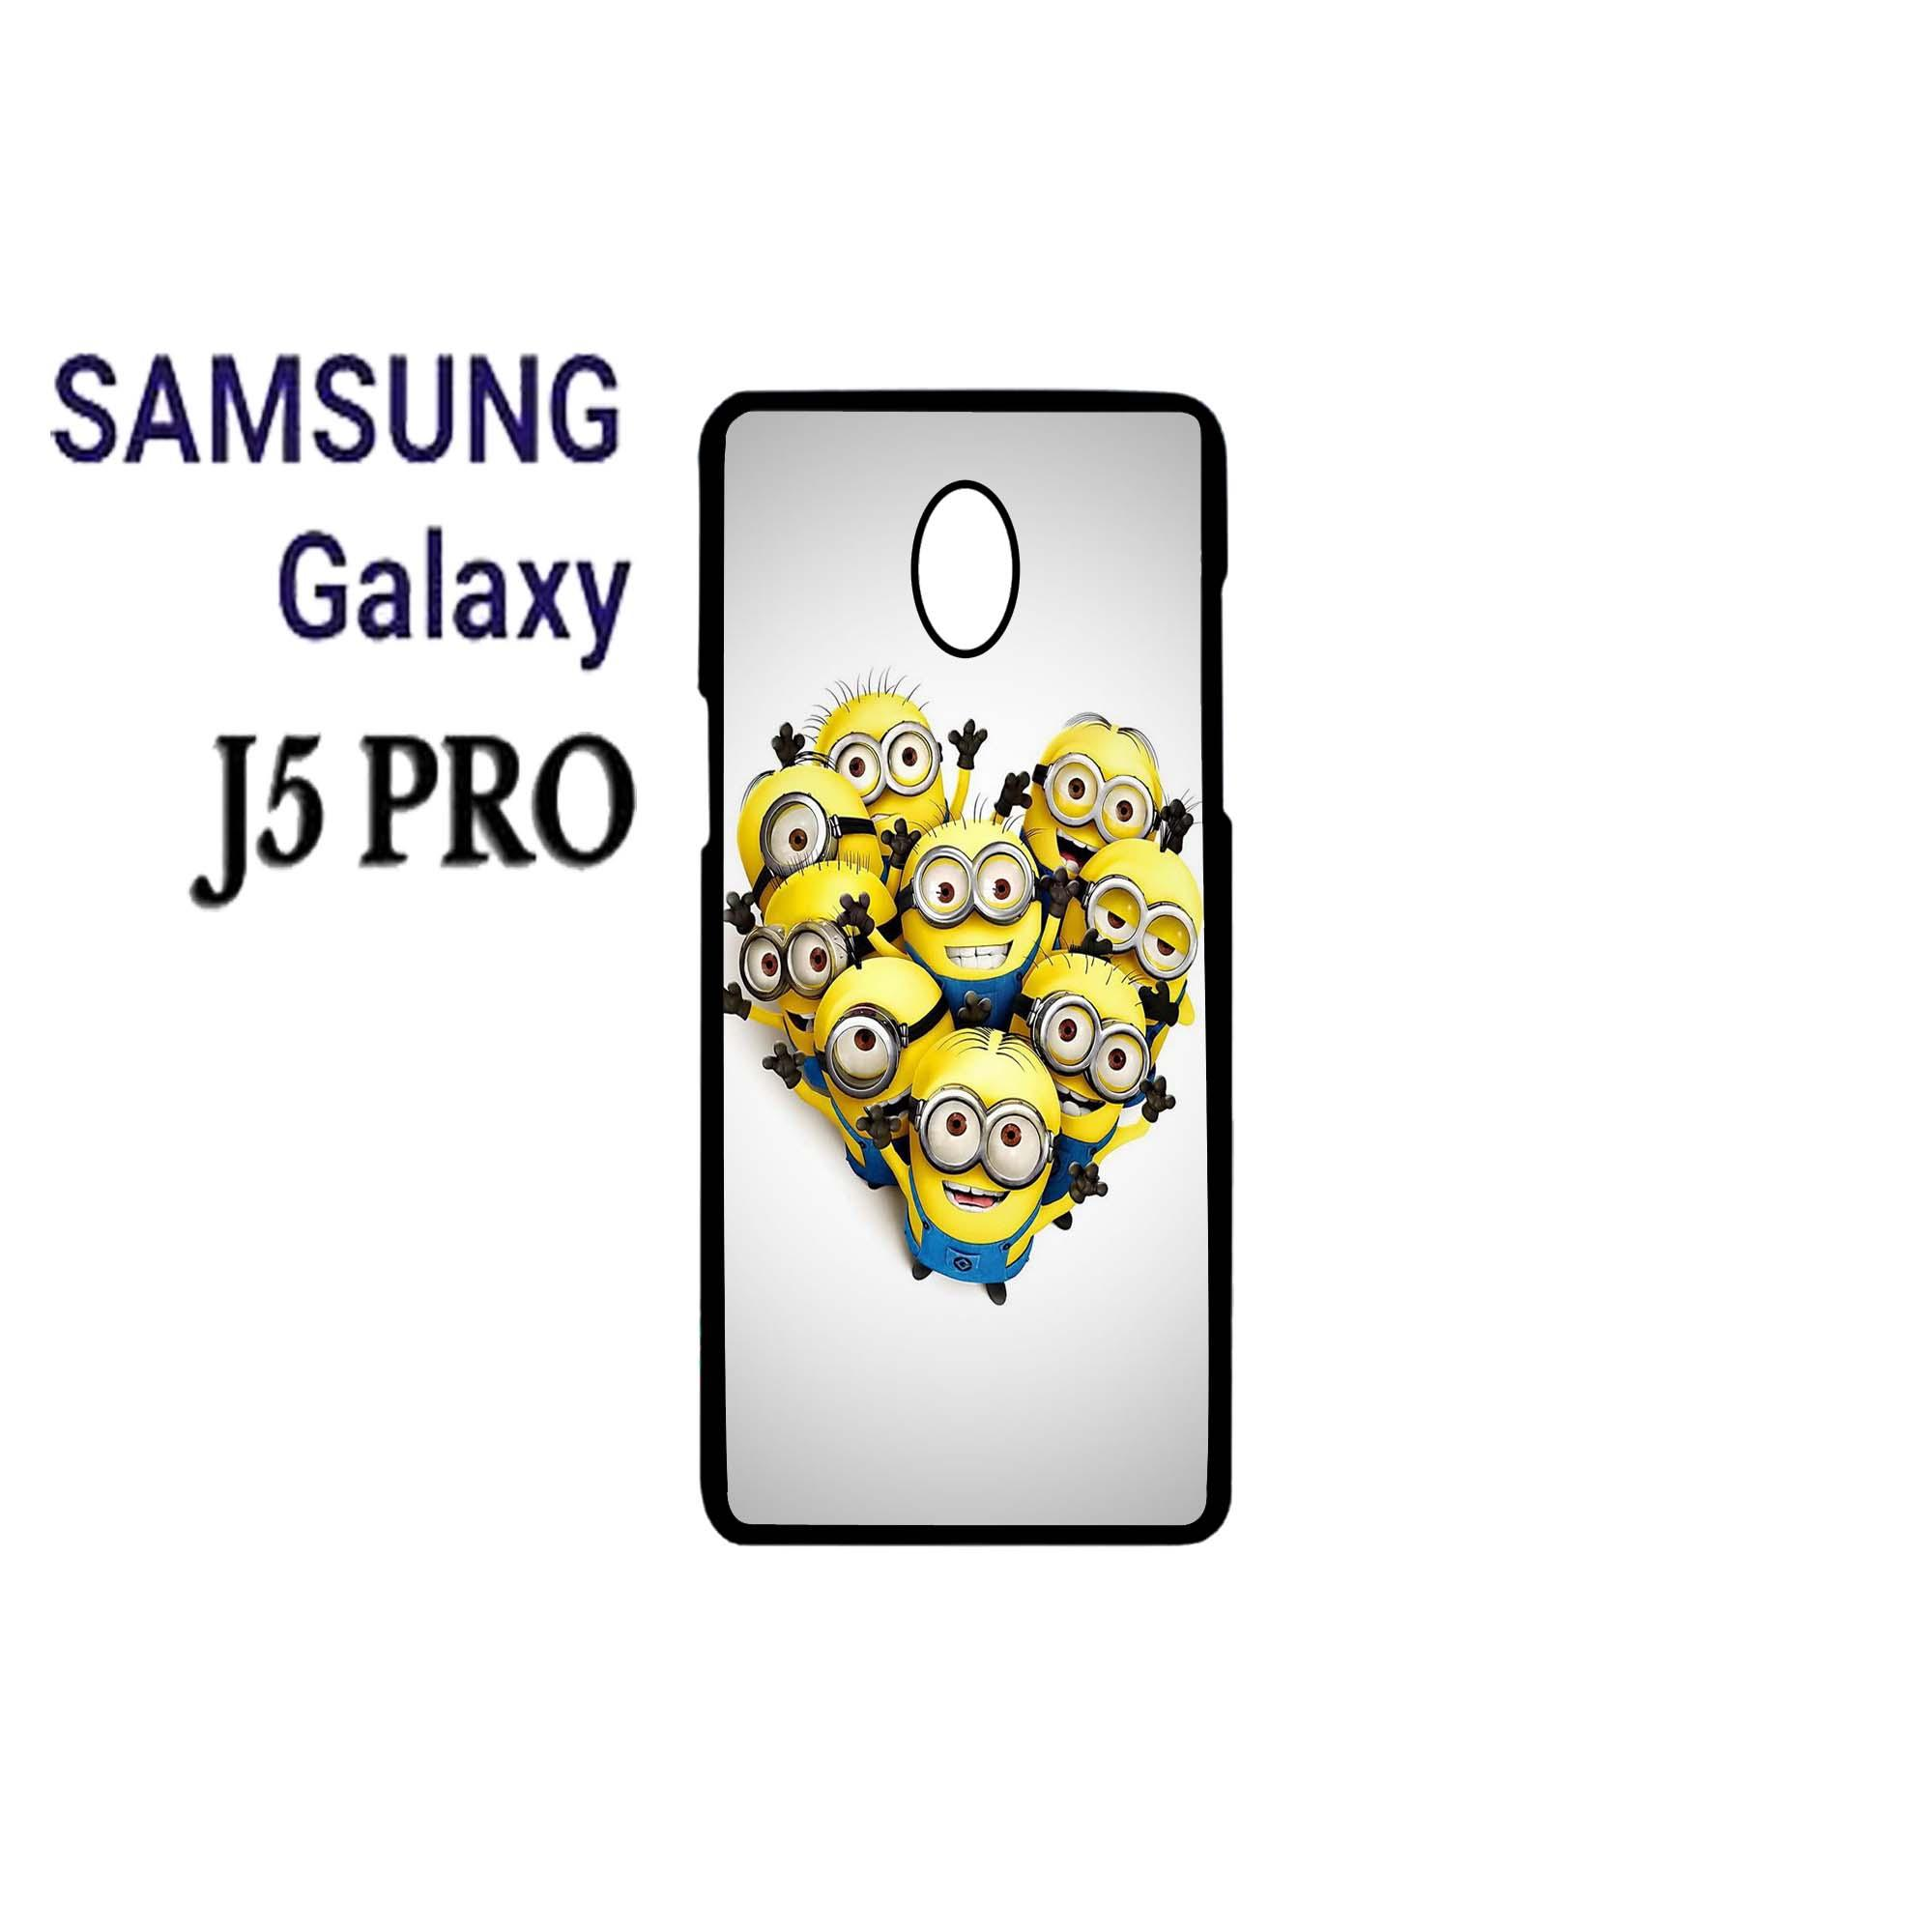 BCS Custom Keren Fashion Phone Case New Samsung Galaxy J5 ProIDR38000. Rp 38.000